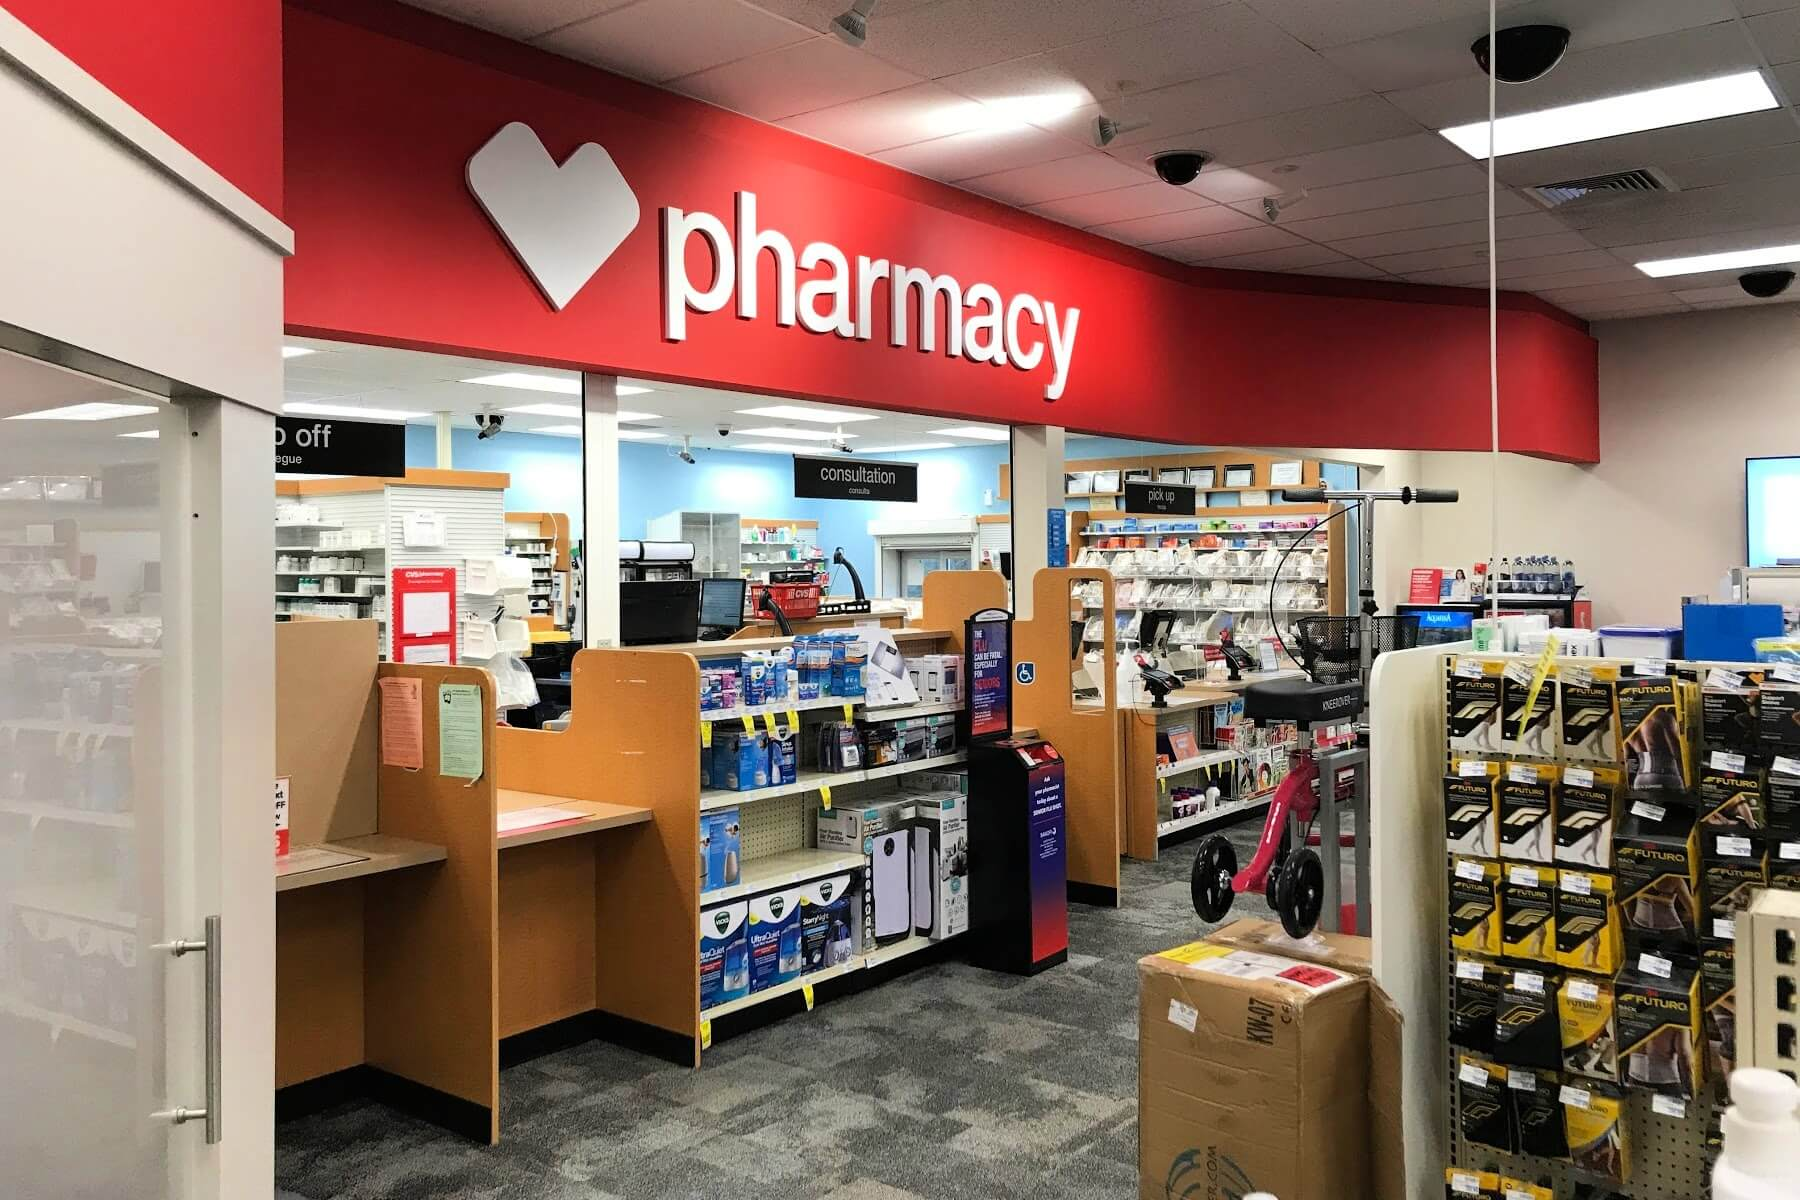 Knoebel Construction completes construction of health clinics at CVS Pharmacy locations in Missouri, Kansas and Tennessee